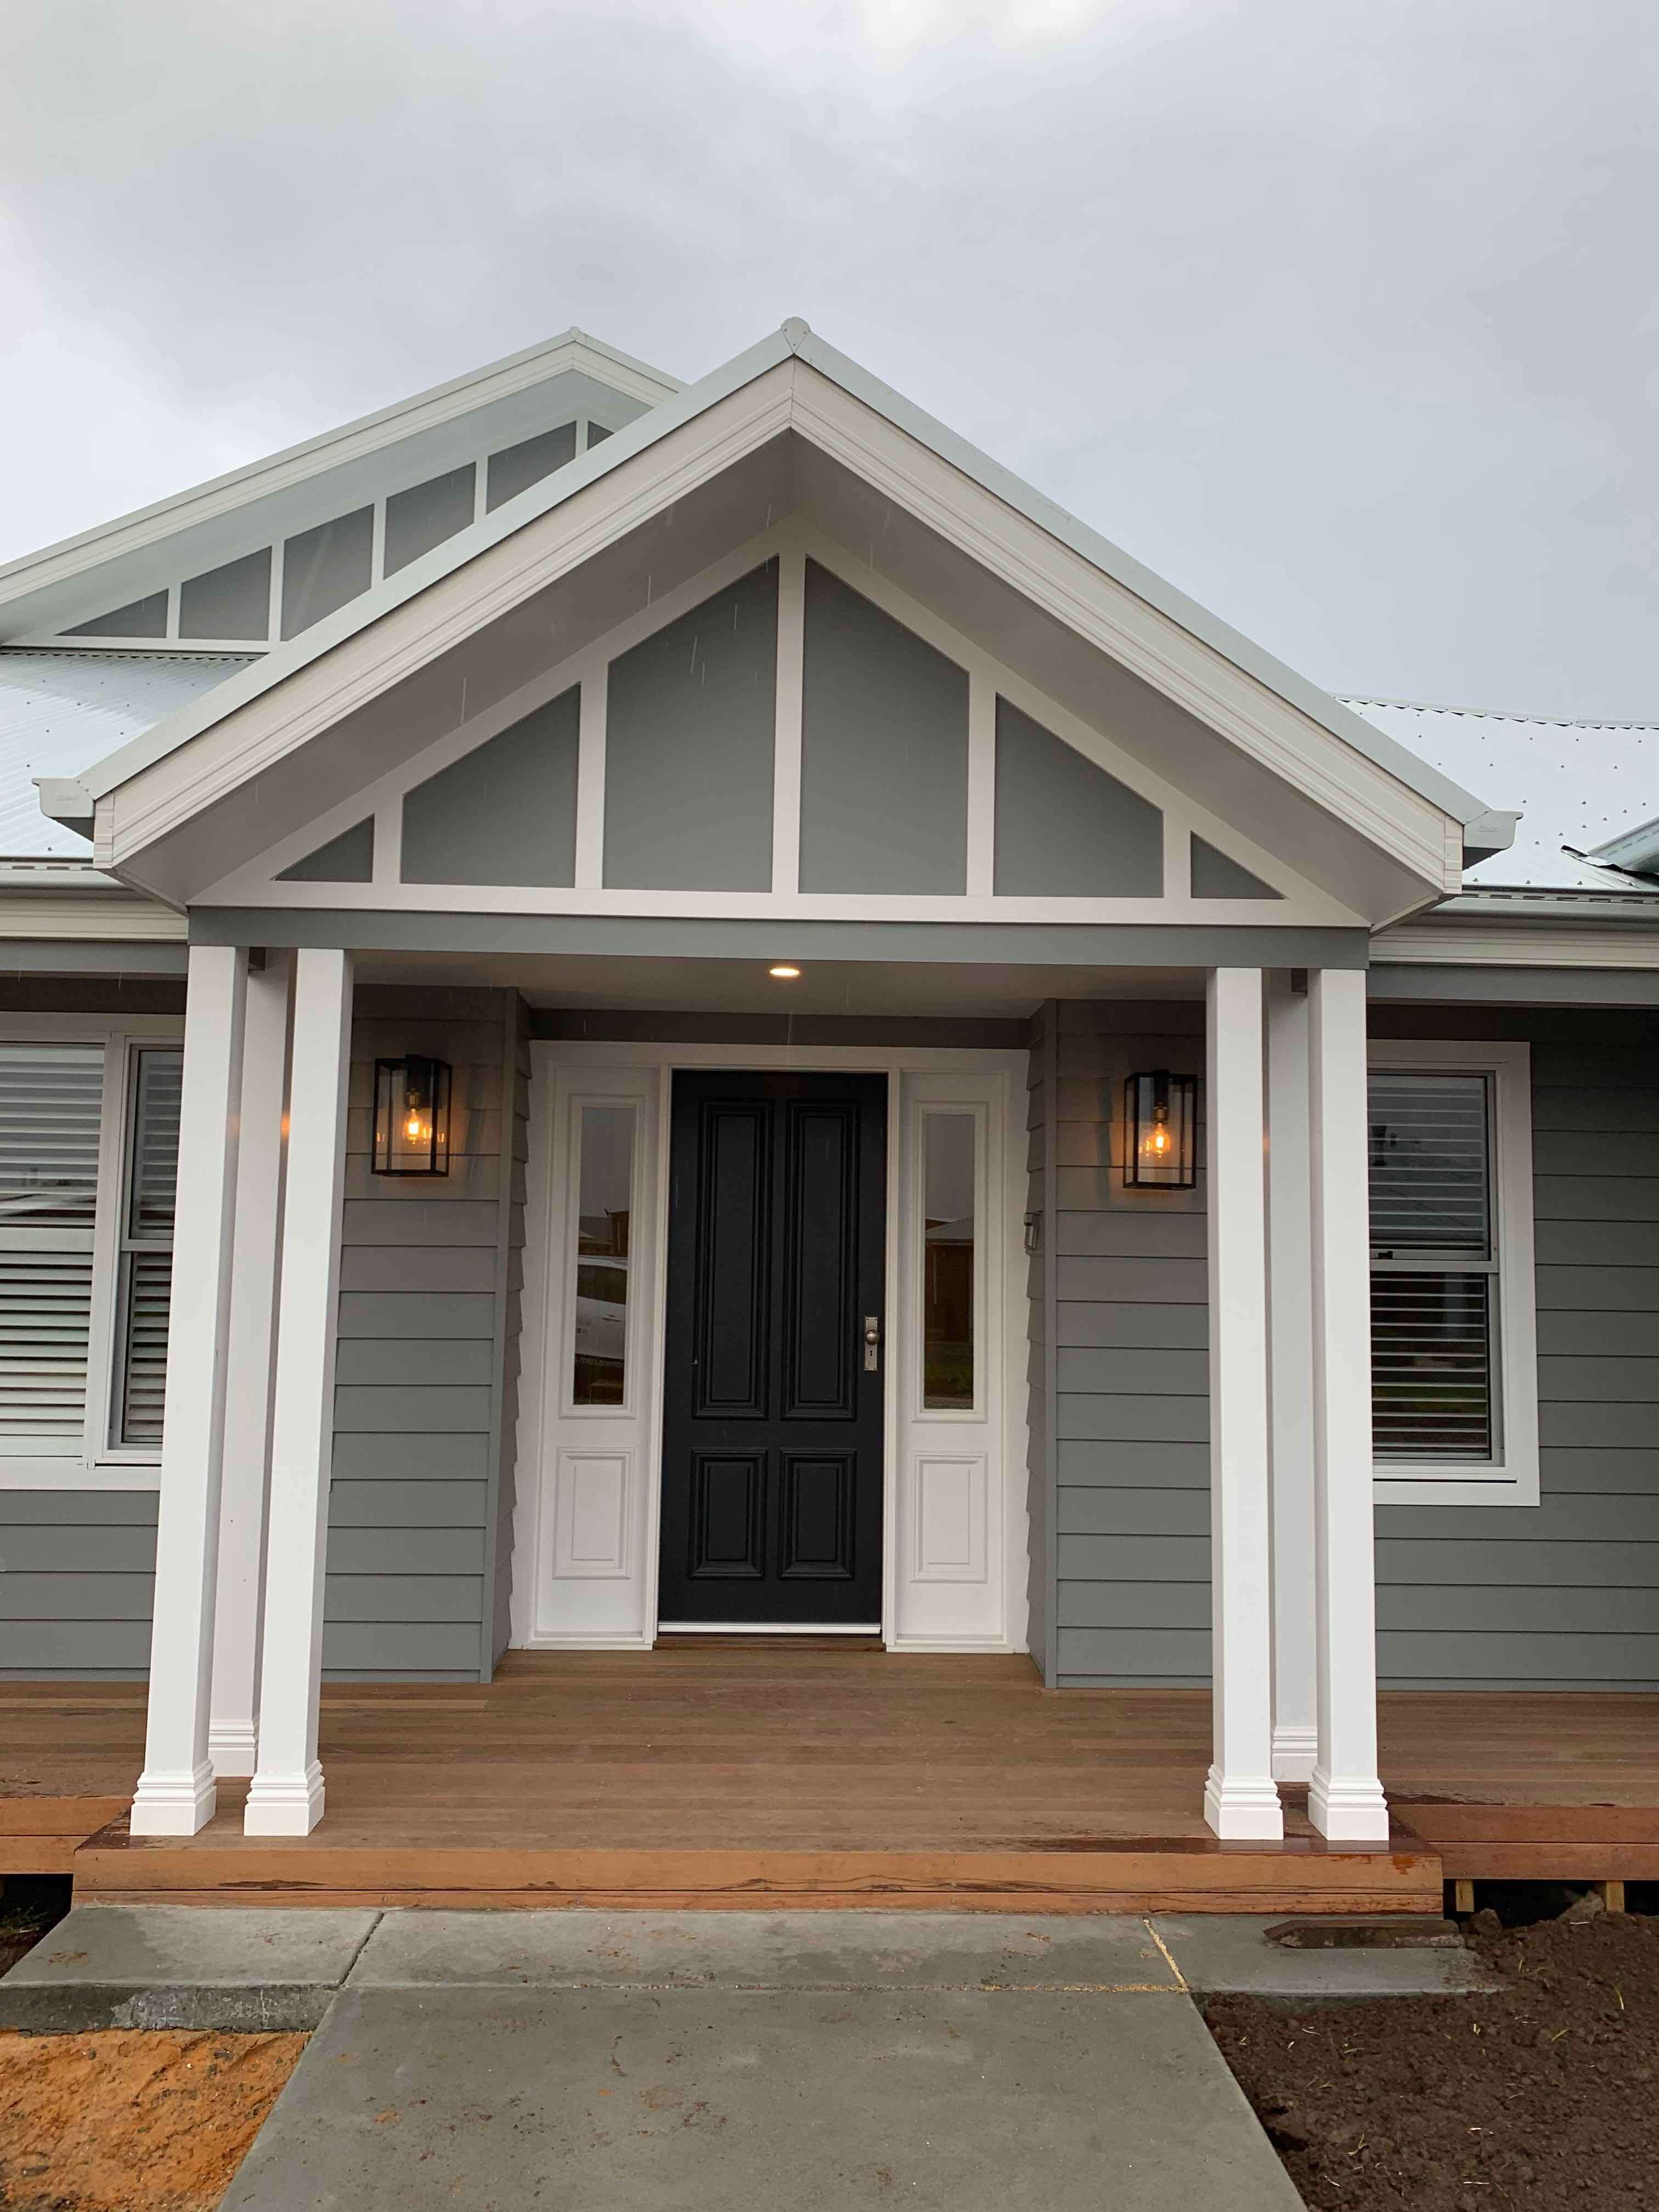 Verandah entry in Ranch Style home by Virtue Homes